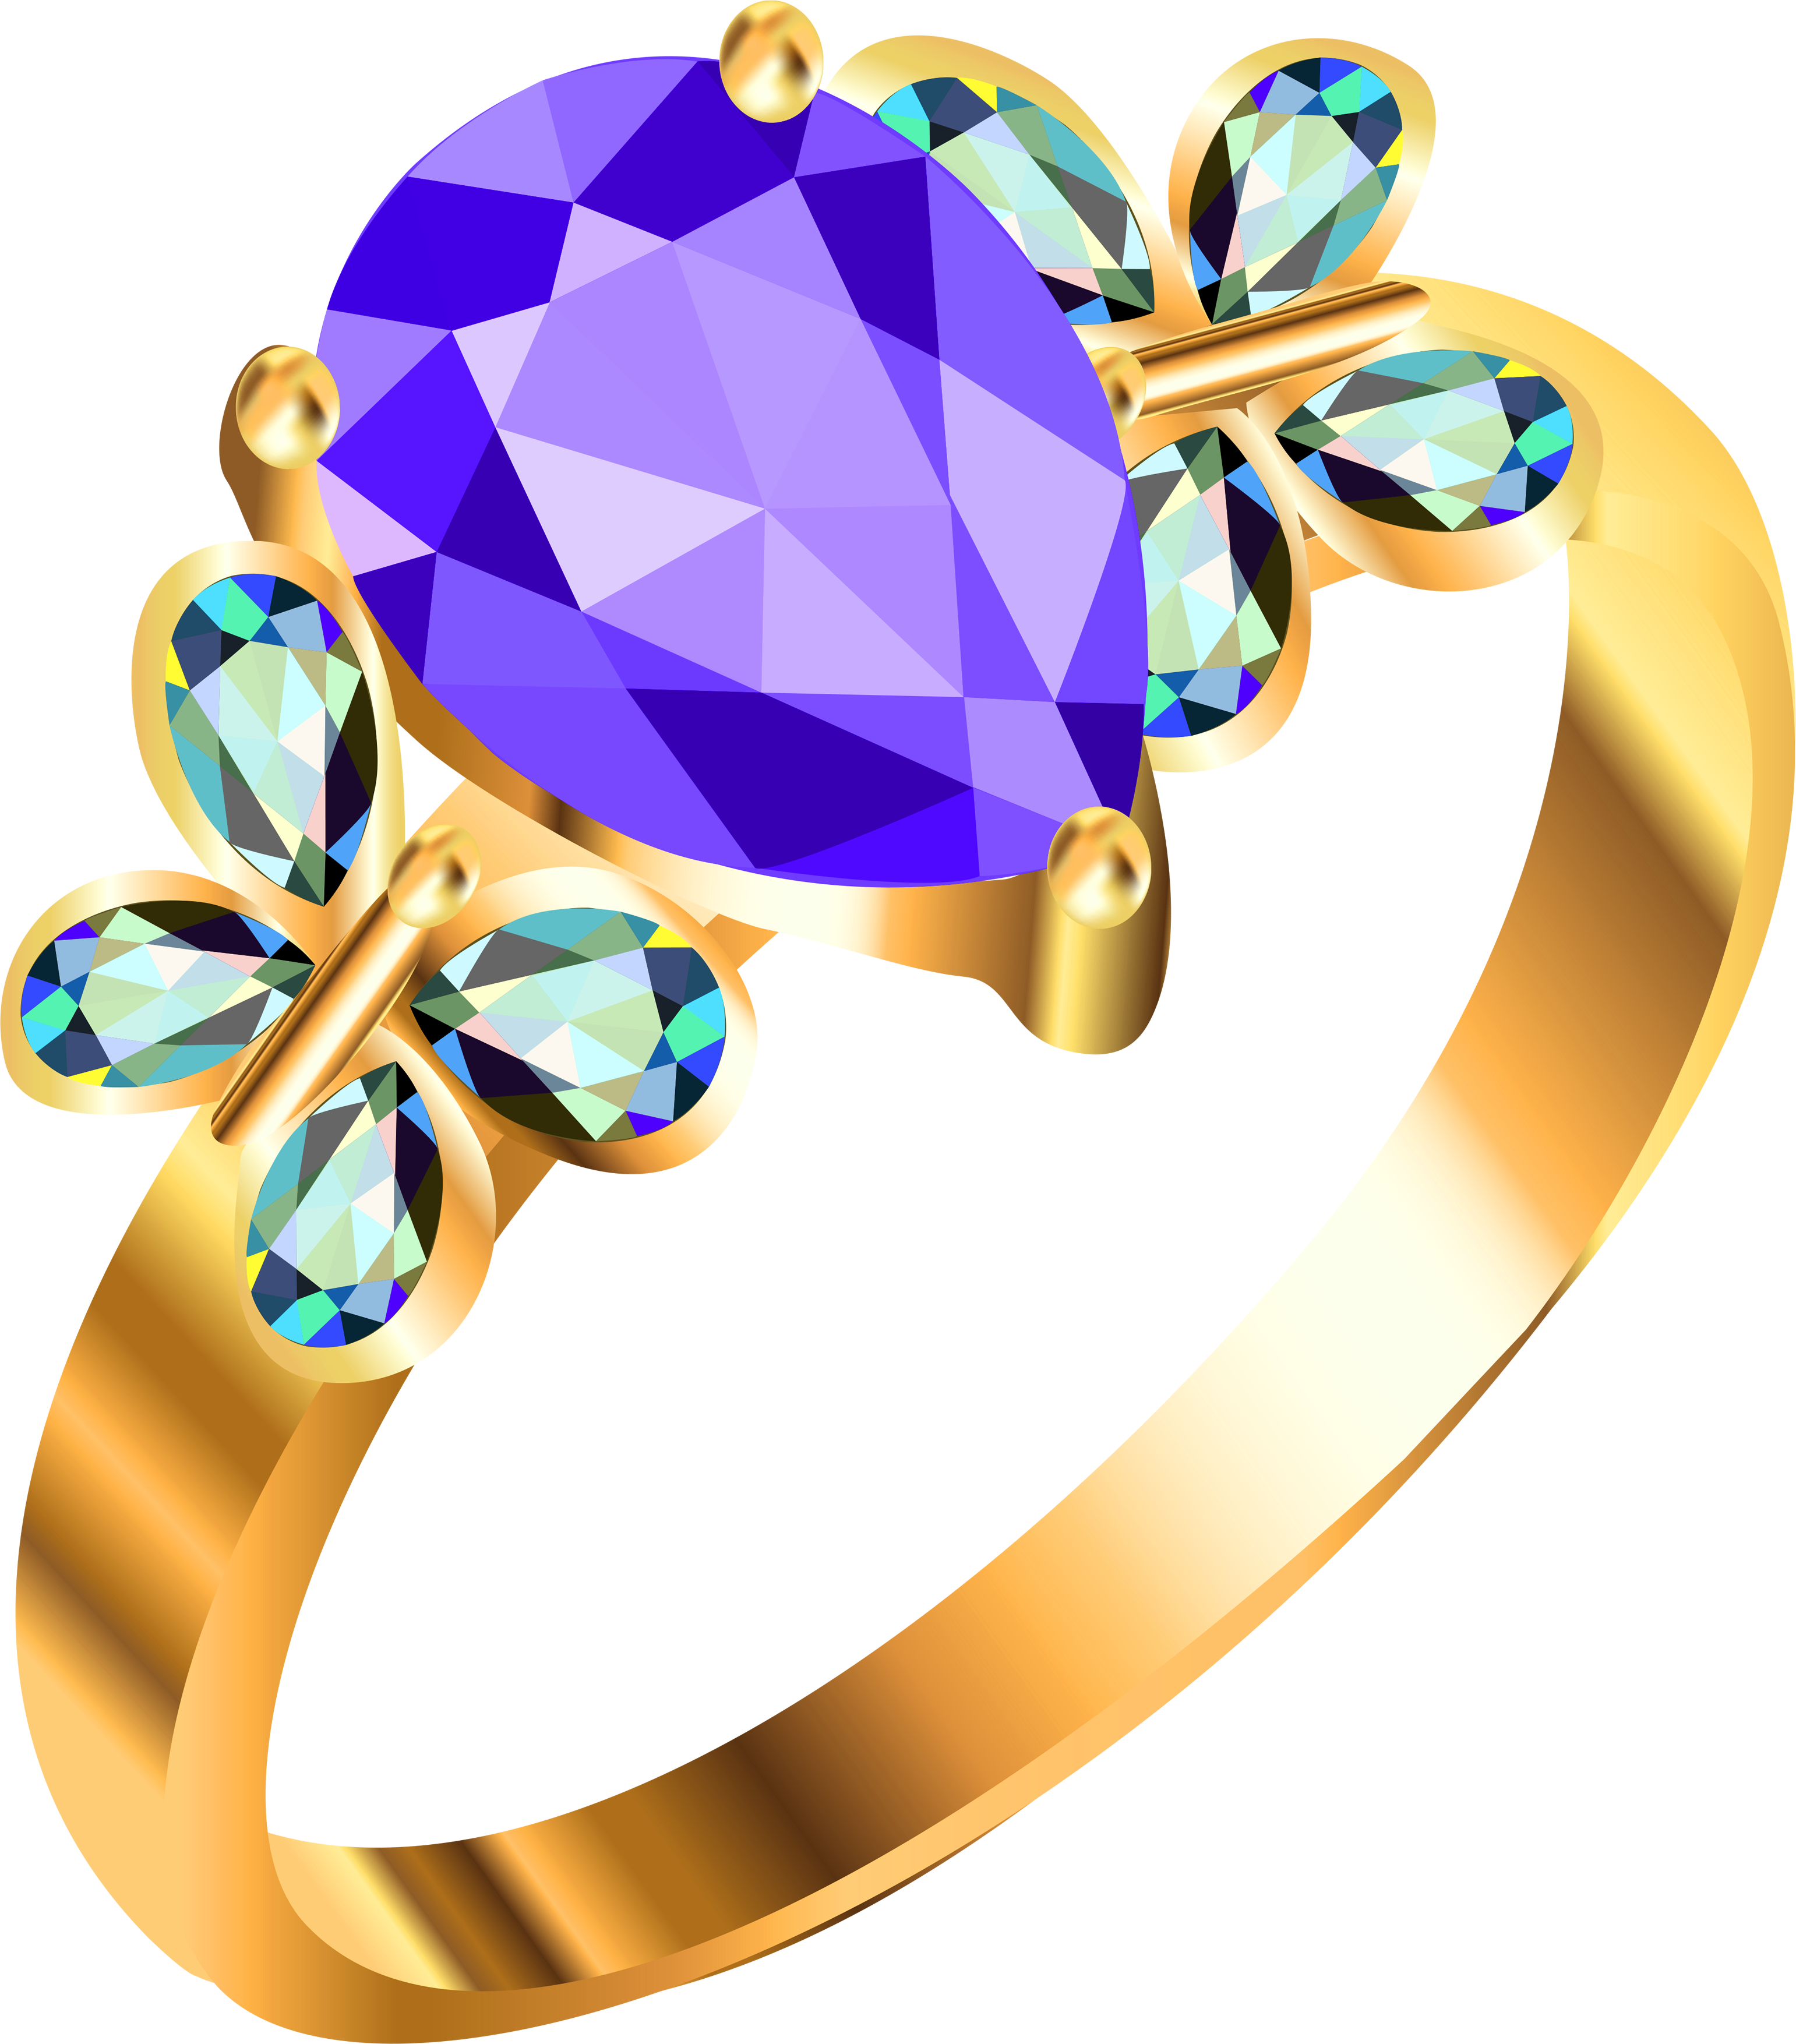 3083x3509 Ring Clipart Jewelry Shop